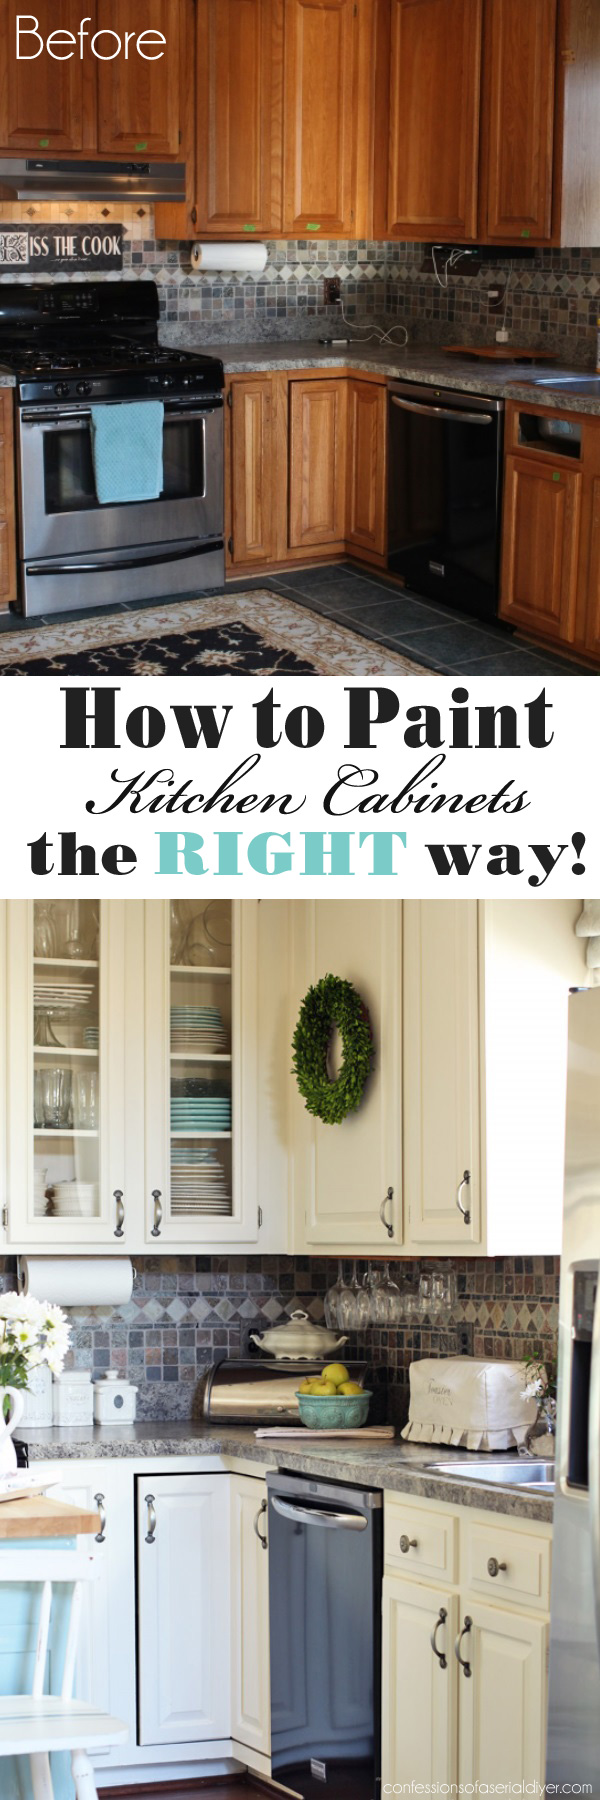 How to paint kitchen cabinets a step by step guide for What kind of paint to use on kitchen cabinets for bow wall art